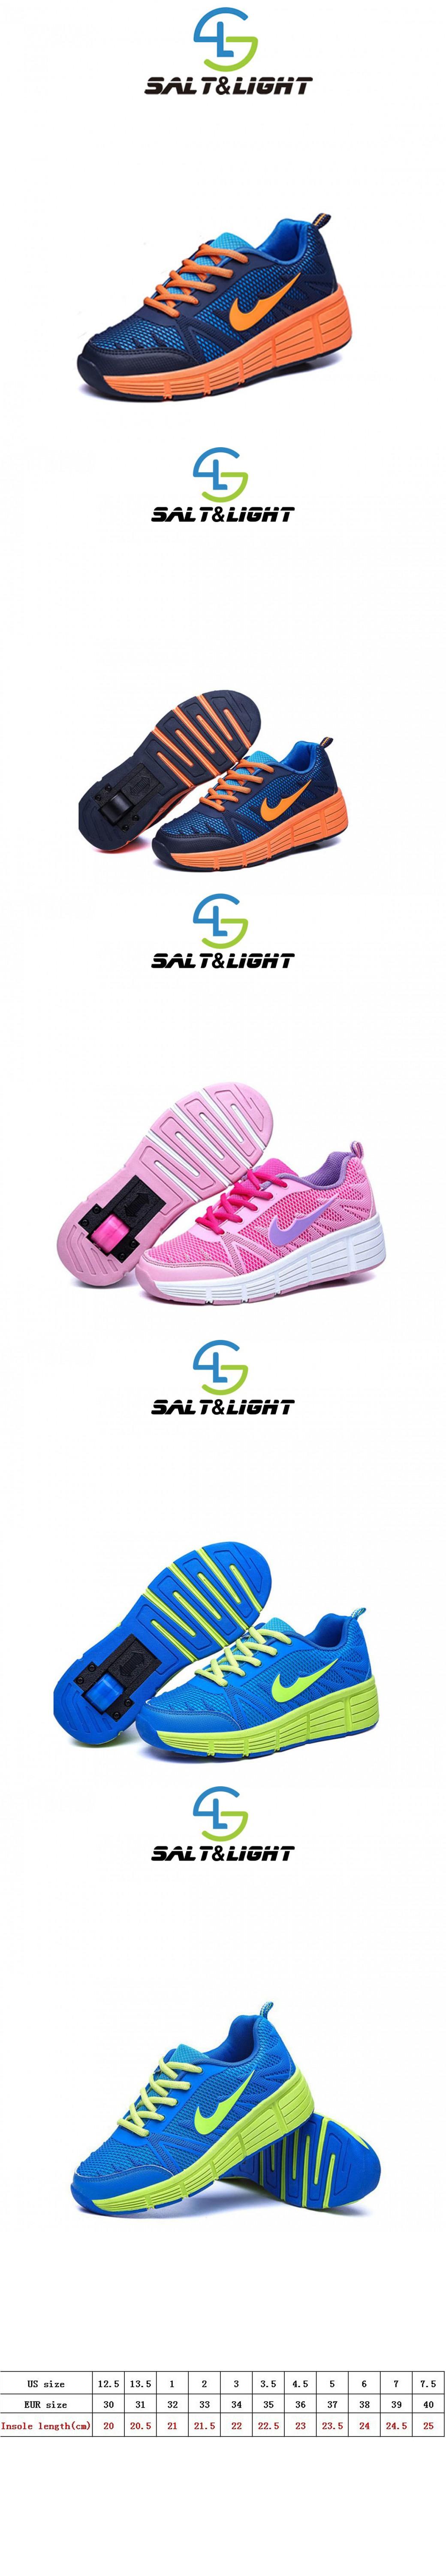 Roller shoes london - 2016 New Children Heelys Roller Shoes With Wheels Kids Shoes Fashion Sneakers For Boys Girls Bz013